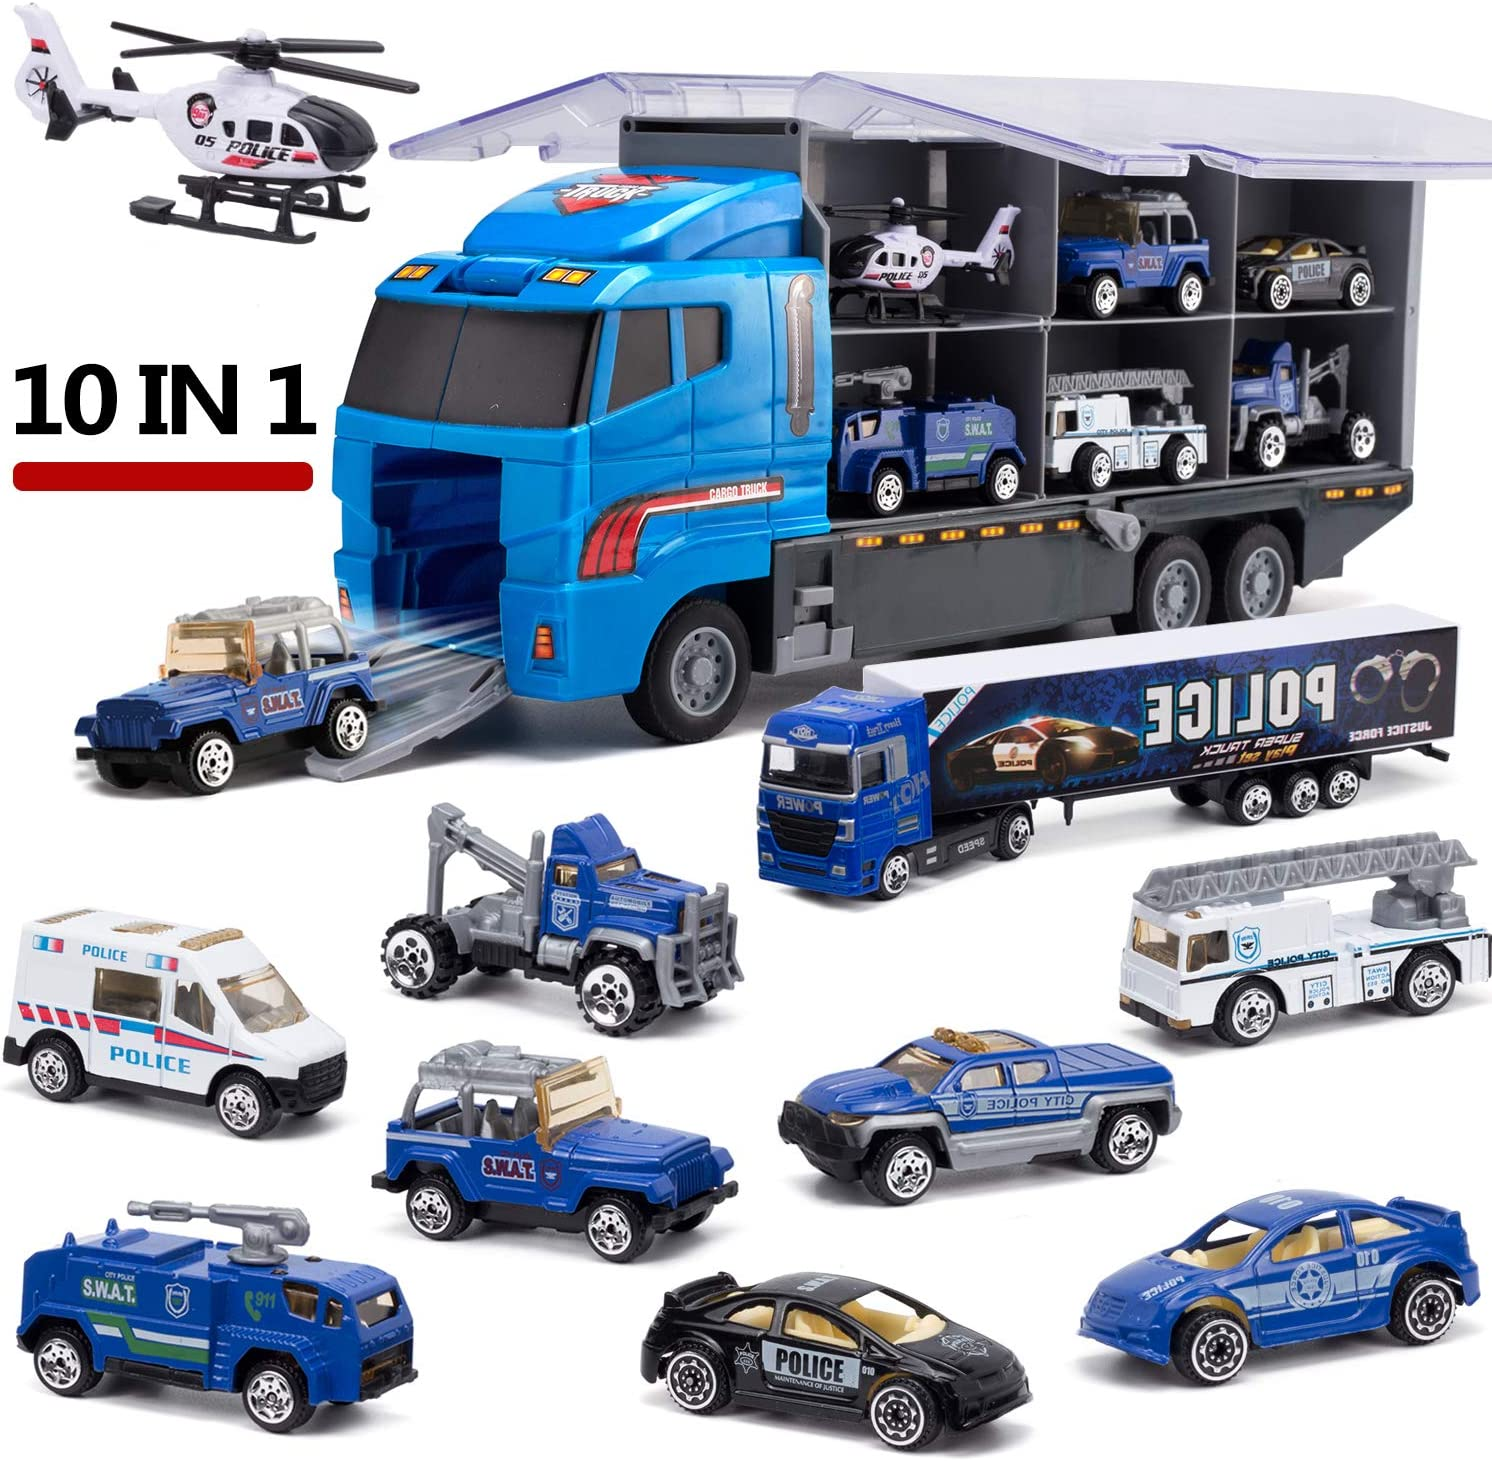 10 in 1 Police Transport Truck, Mini Die Cast Plastic Play Vehicle in Carrier Car Toy Set, Mini Cars for Kid Children Boy And Girl Best Gift for